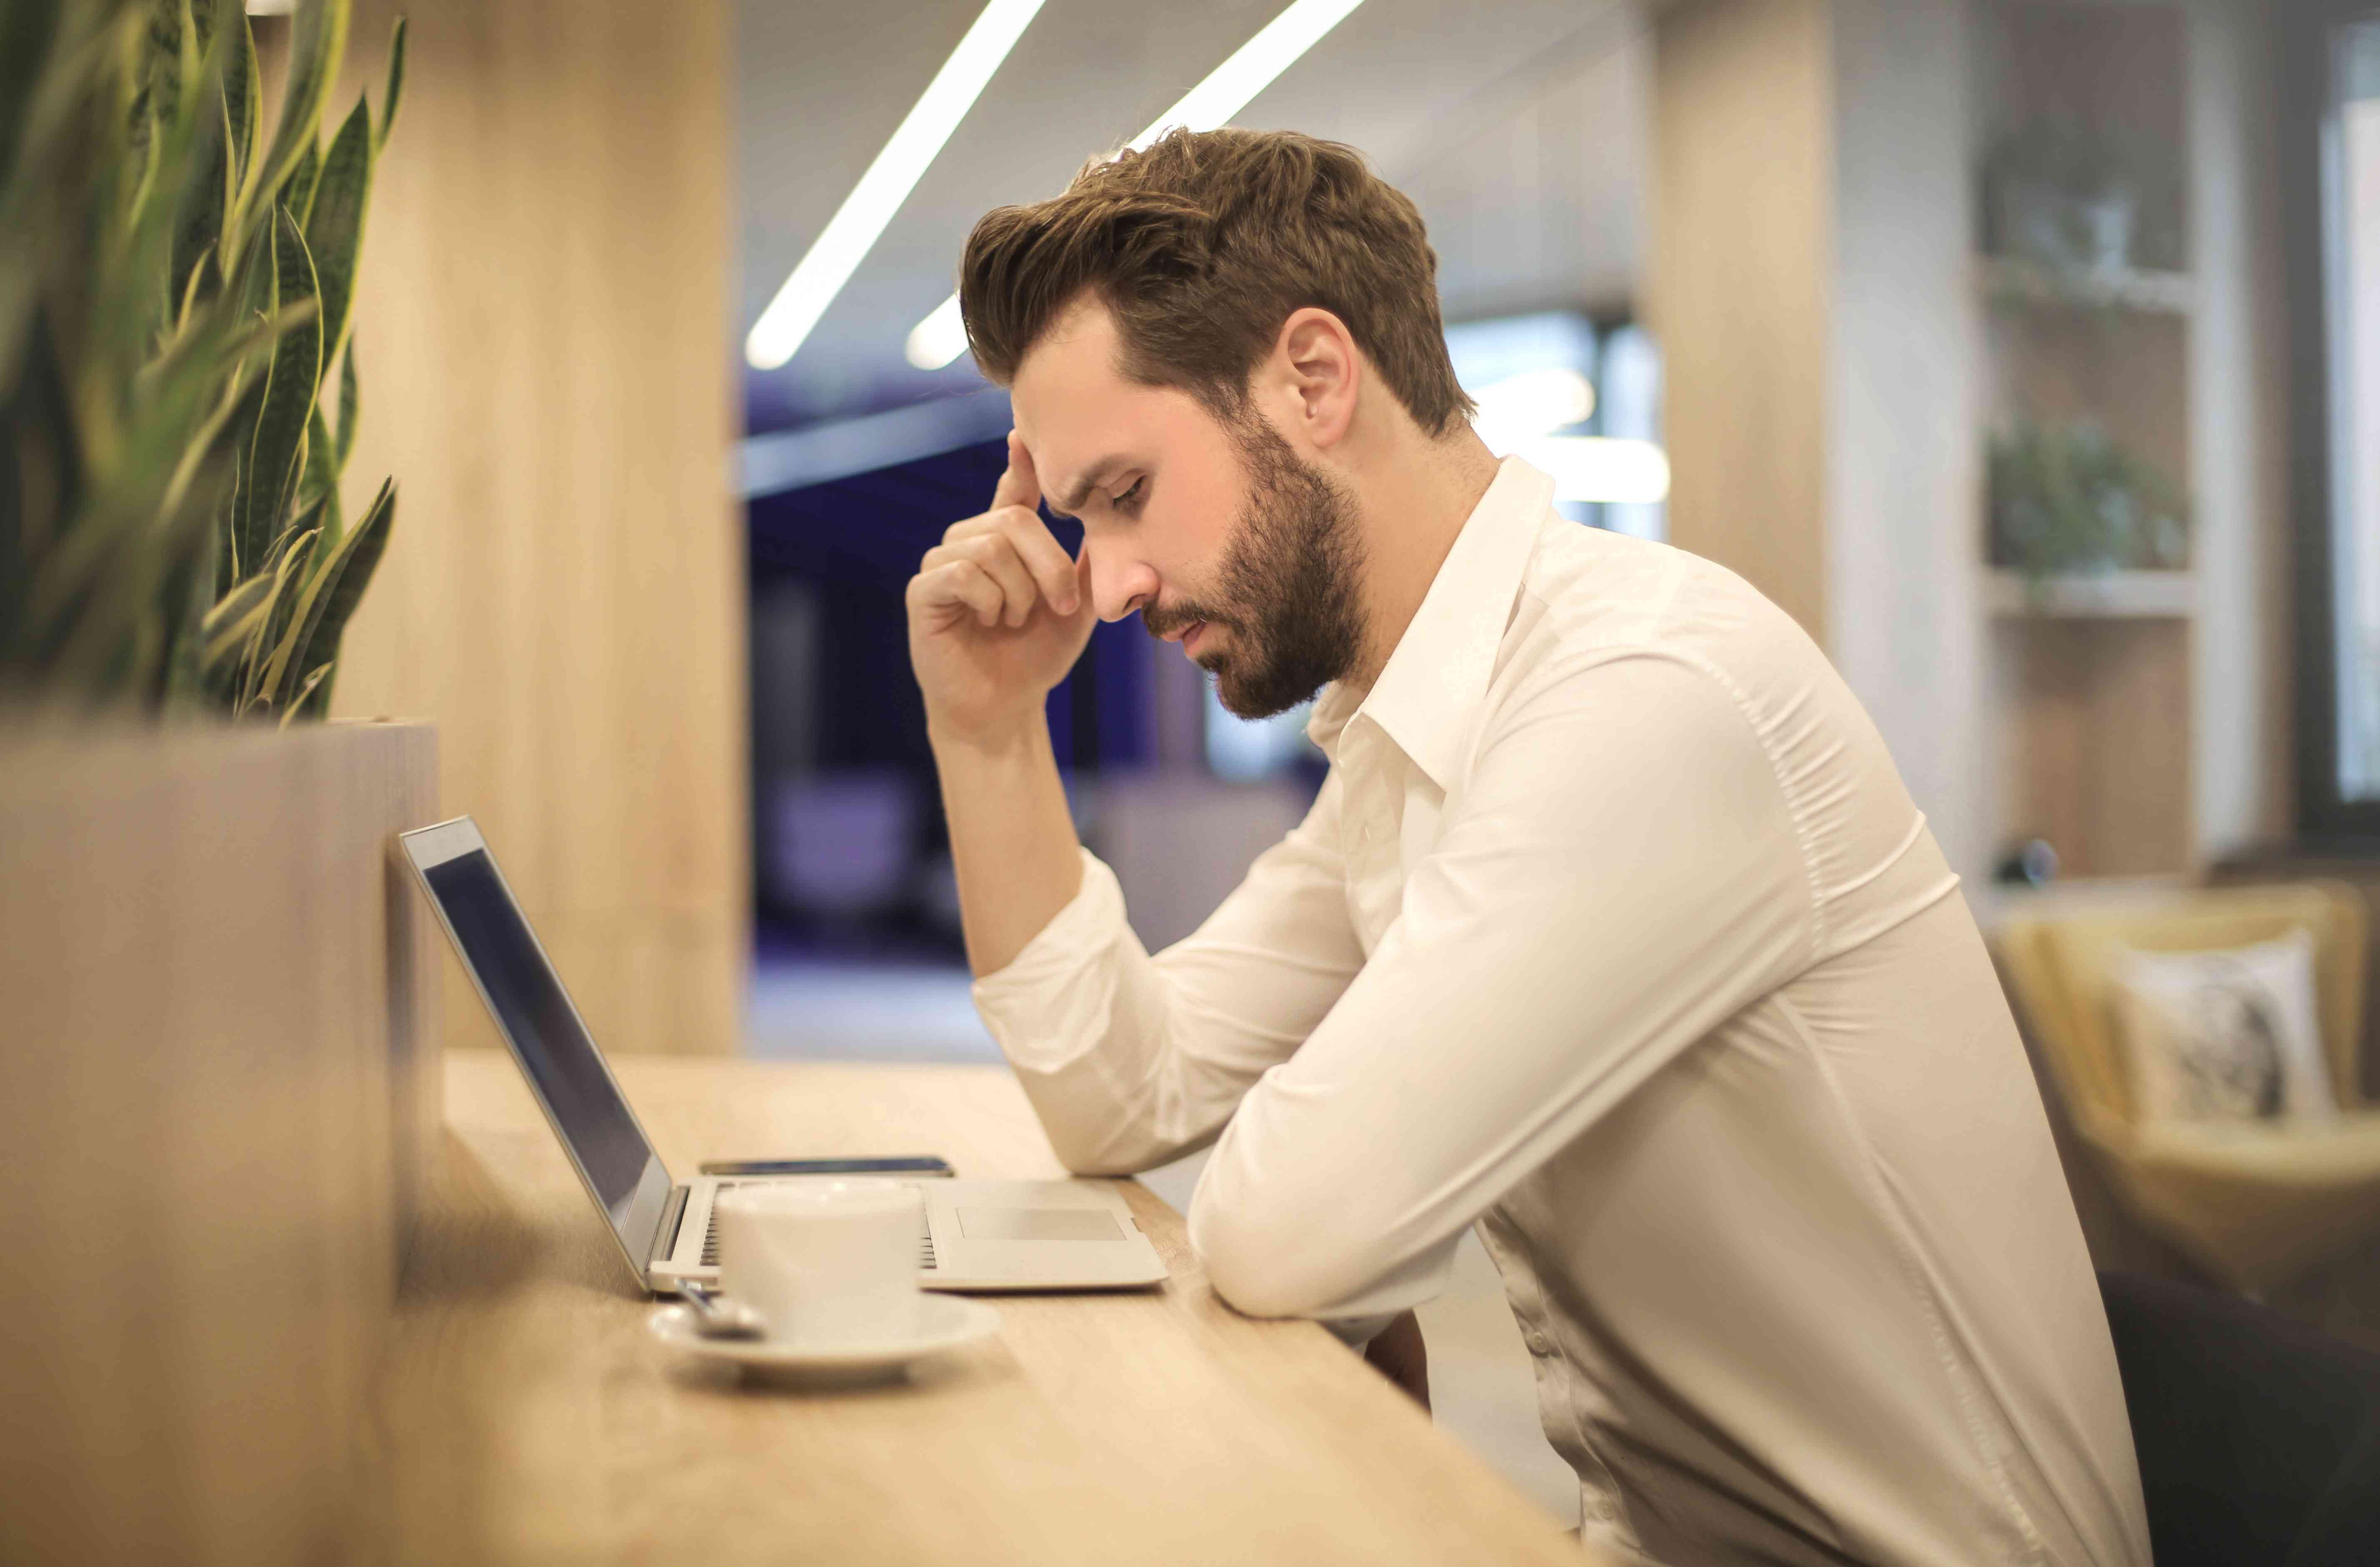 Frustrated businessman with laptop displaying a printer offline error